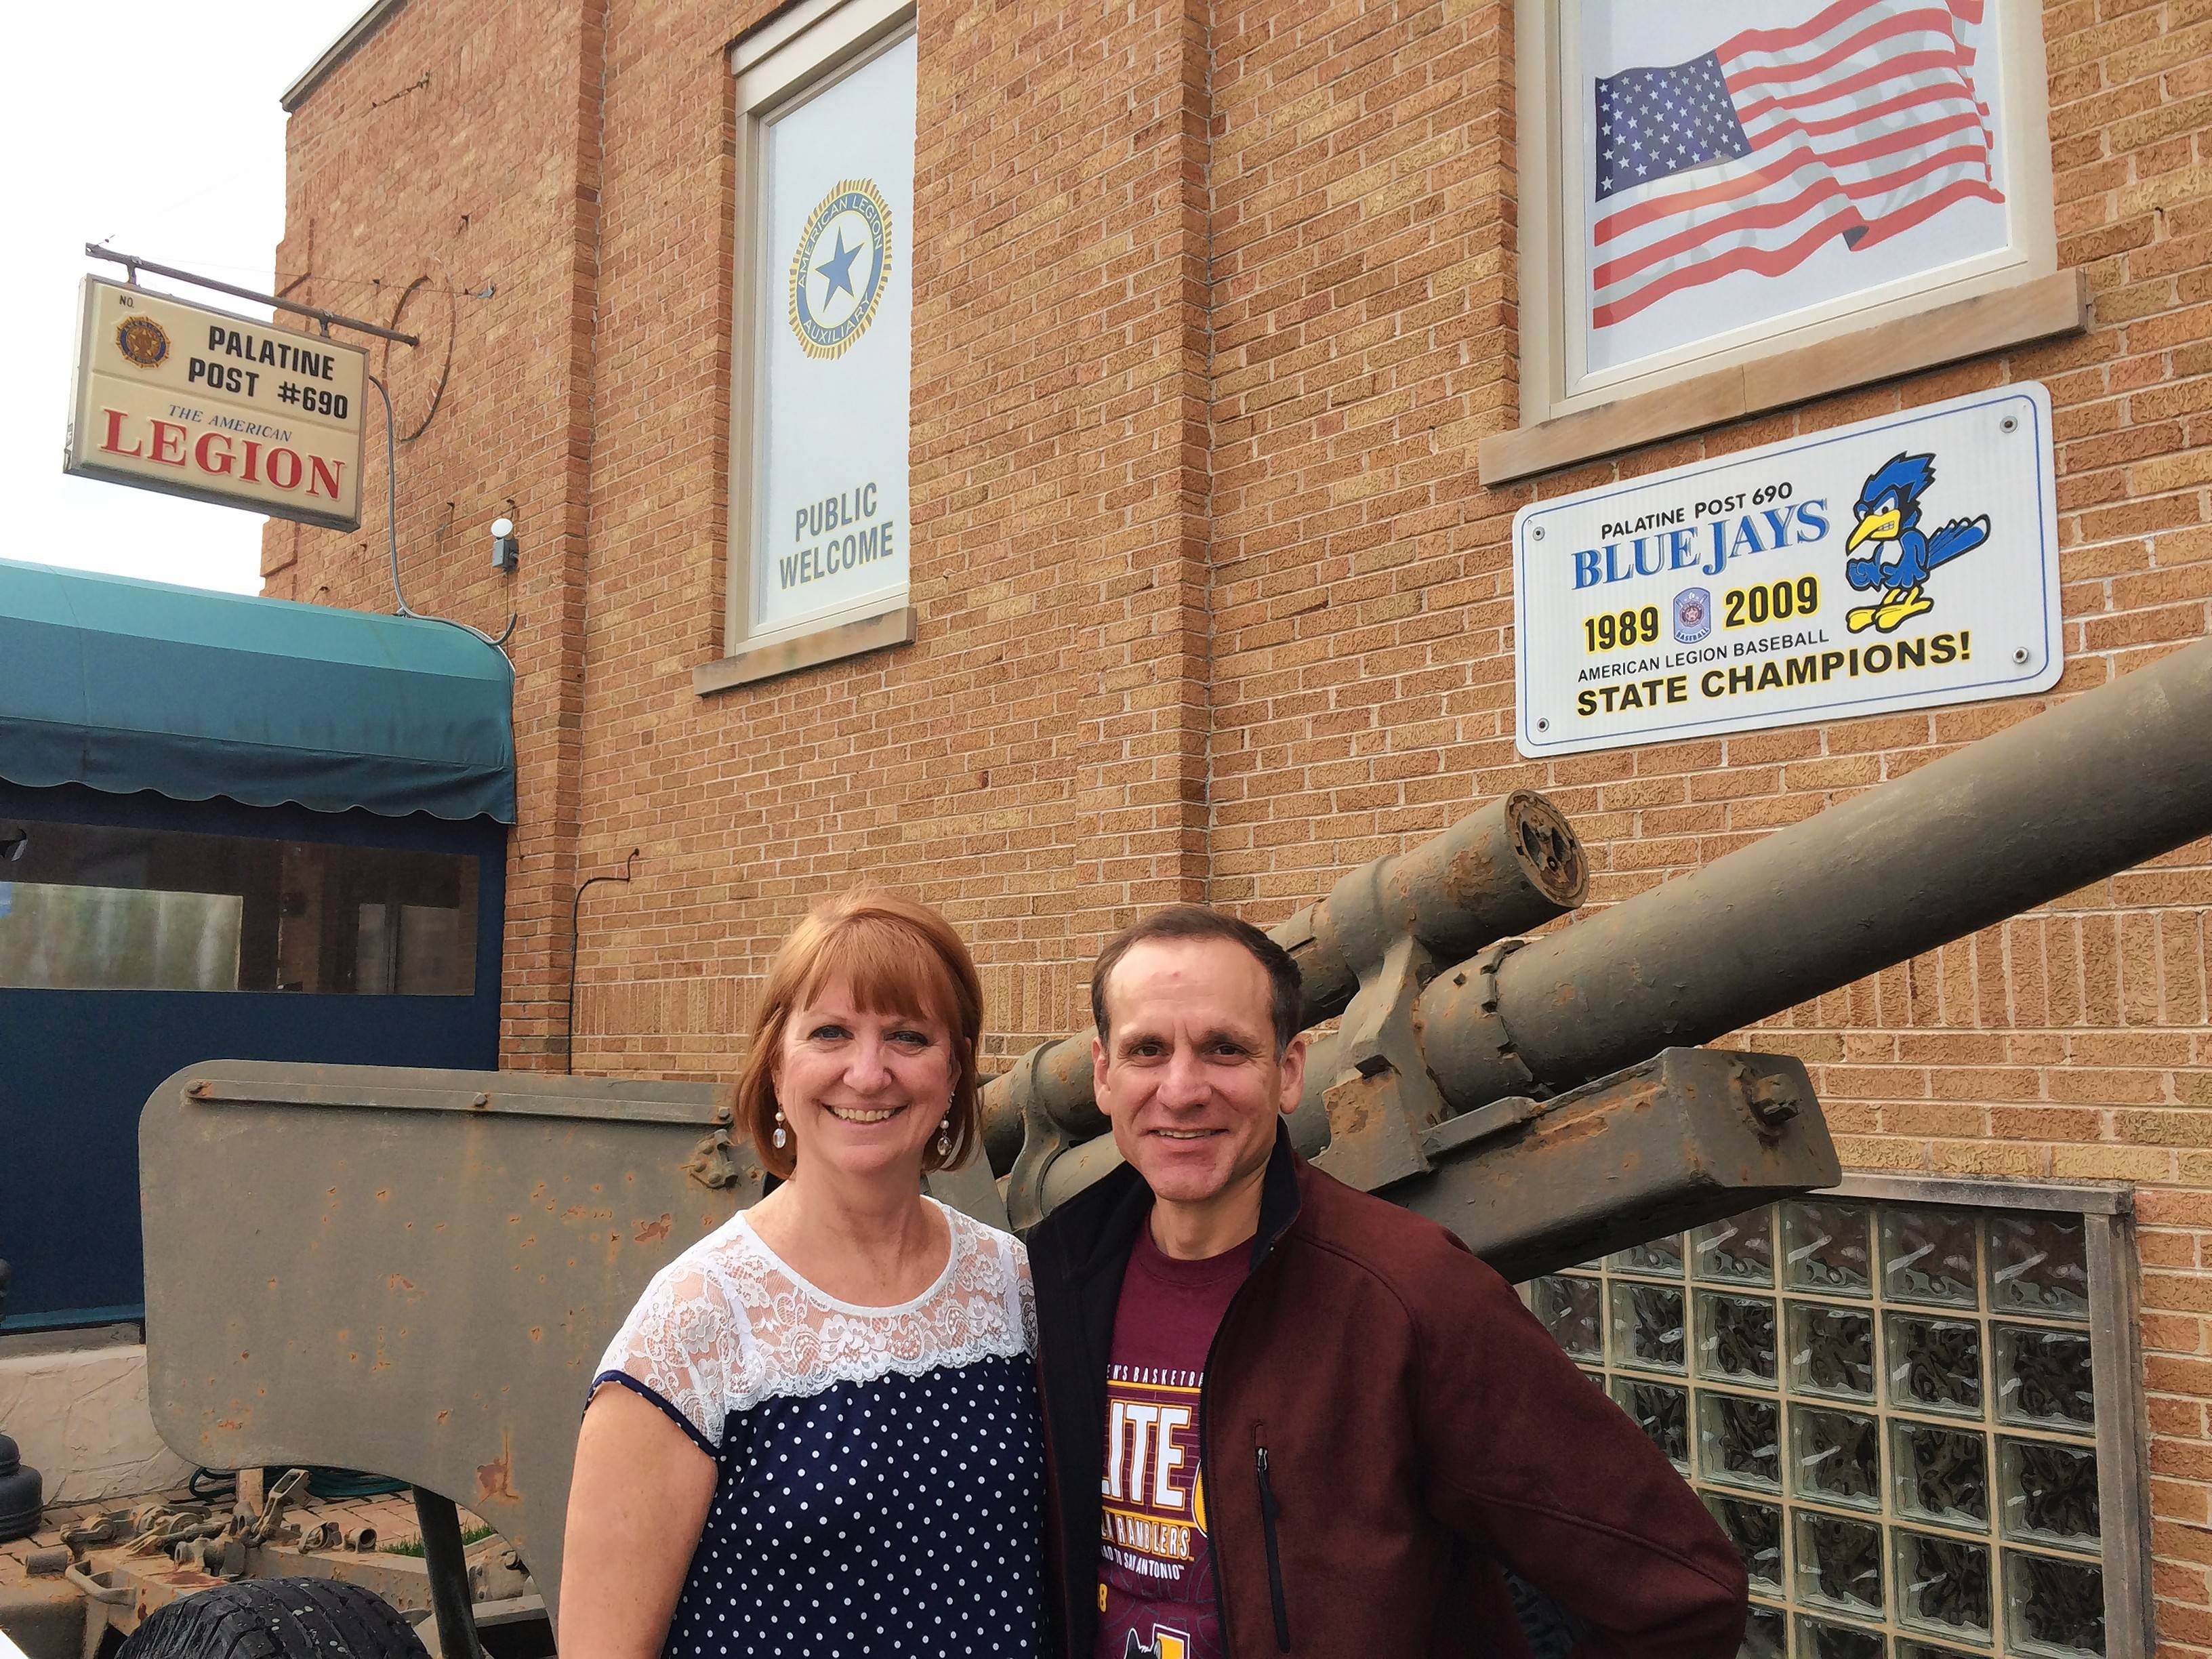 Eileen McKevitt, a member of the Palatine American Legion Post 690 auxiliary, and U.S. Navy veteran Ed Behrens, a member there, helped organize an effort that resulted in donations of at least 2,000 household supplies for an organization helping homeless vets move into permanent residences.